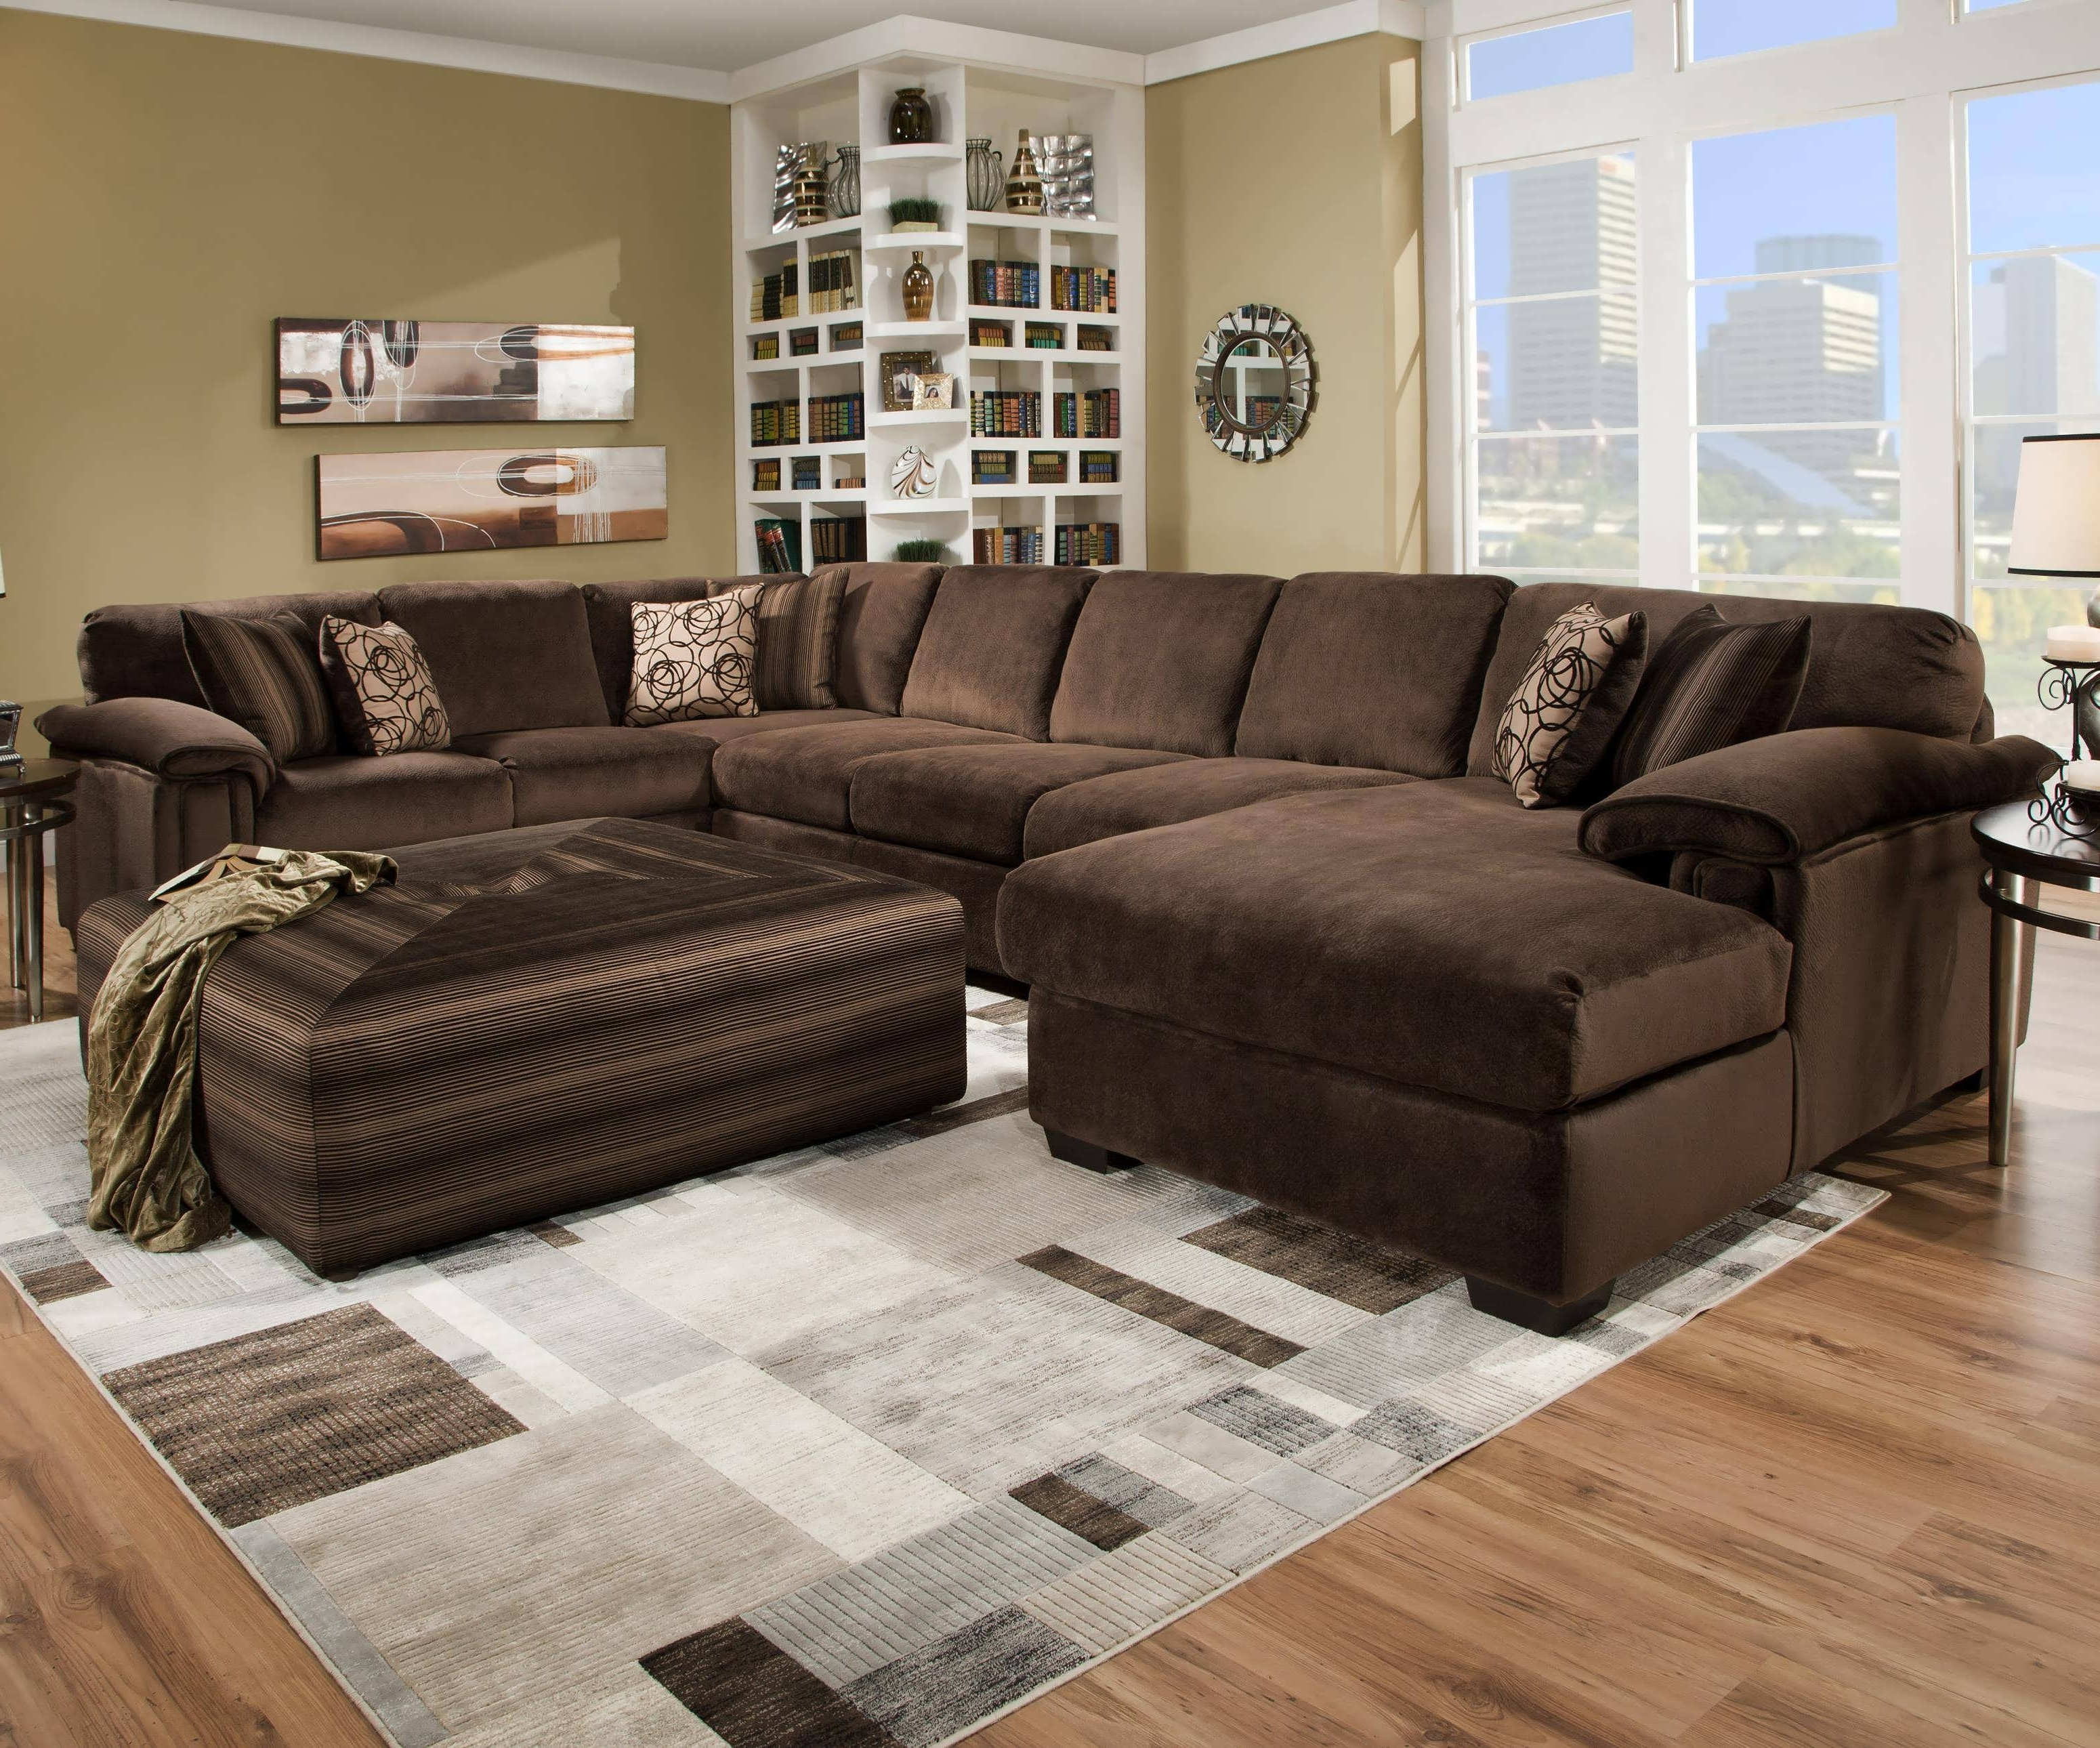 Chaise Lounge Sleeper Sofas In Most Recently Released Sofa : Sectional Sofa For Small Spaces Couch With Chaise Deep (View 8 of 15)